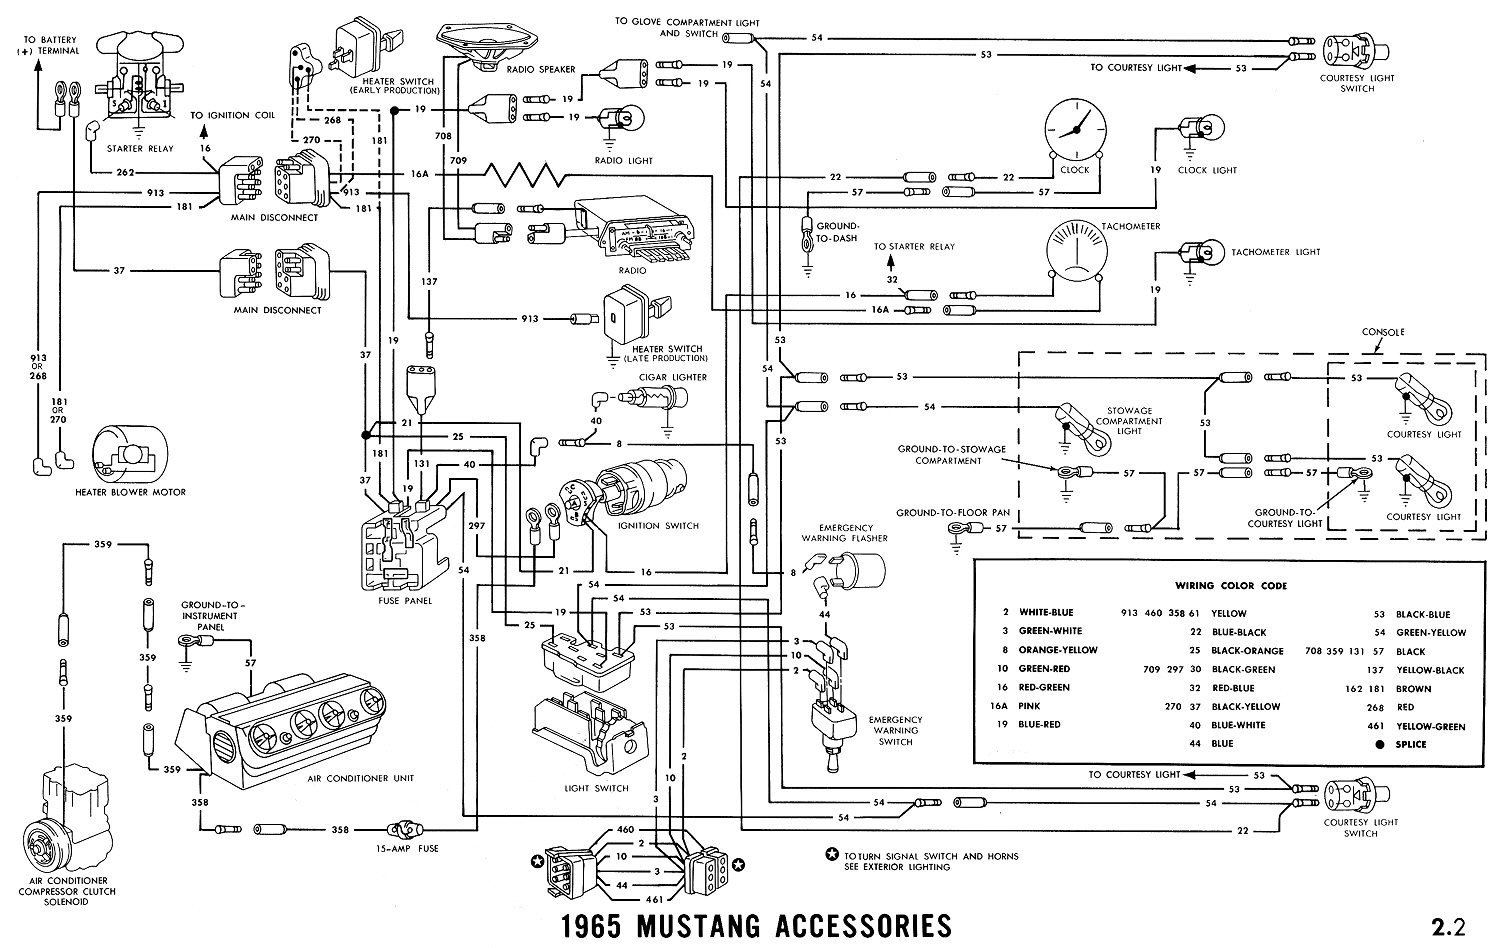 1965i 1965 mustang wiring diagrams average joe restoration 1965 ford mustang wiring diagrams at crackthecode.co